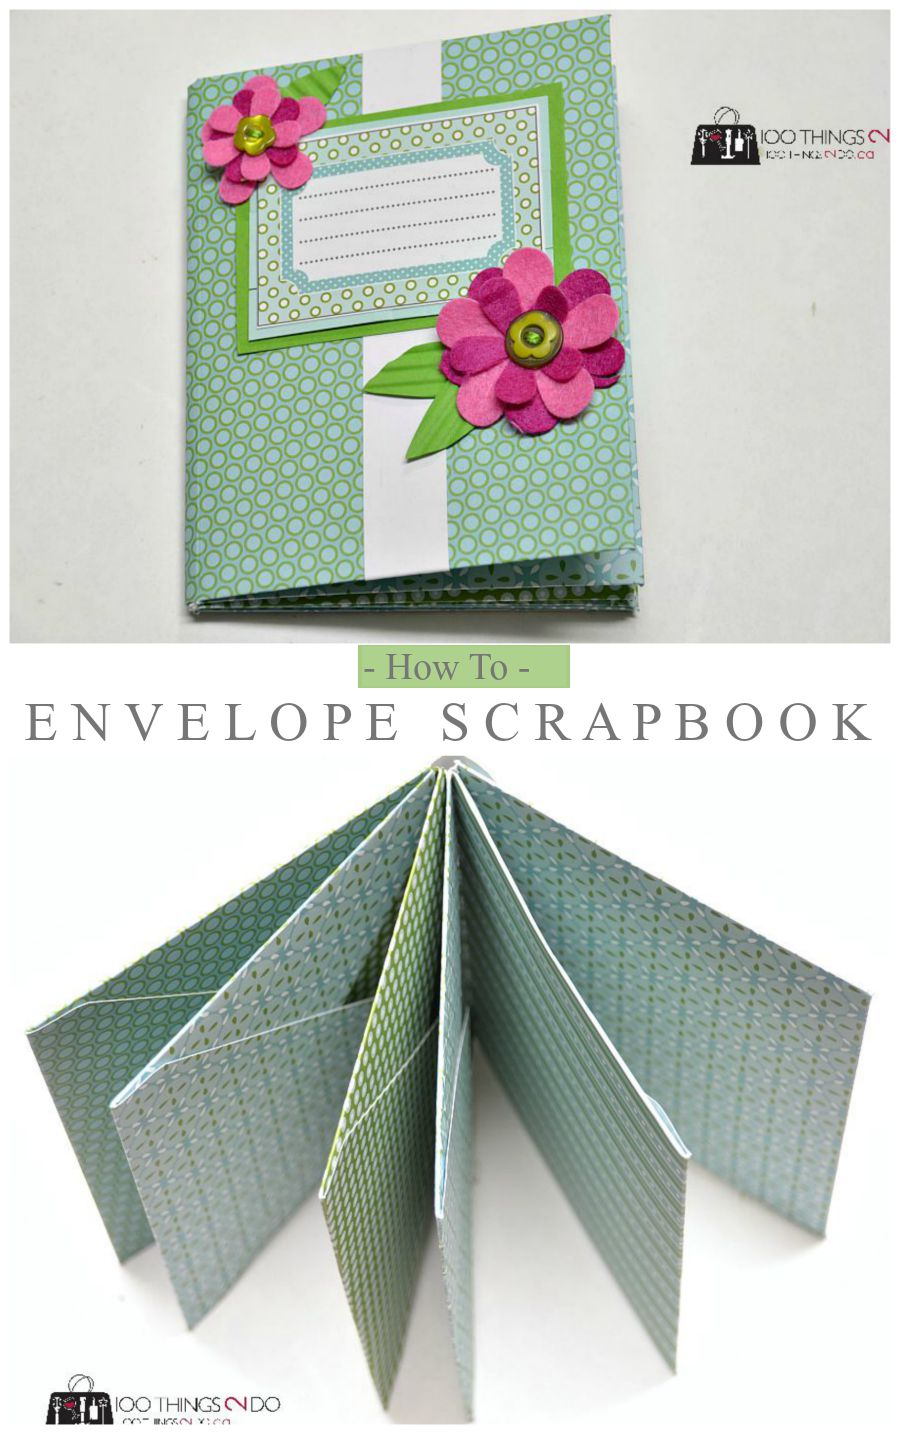 Scrapbook paper envelope - How To Make An Envelope Scrapbook Easy Paper Craft That Makes A Great Brag Book